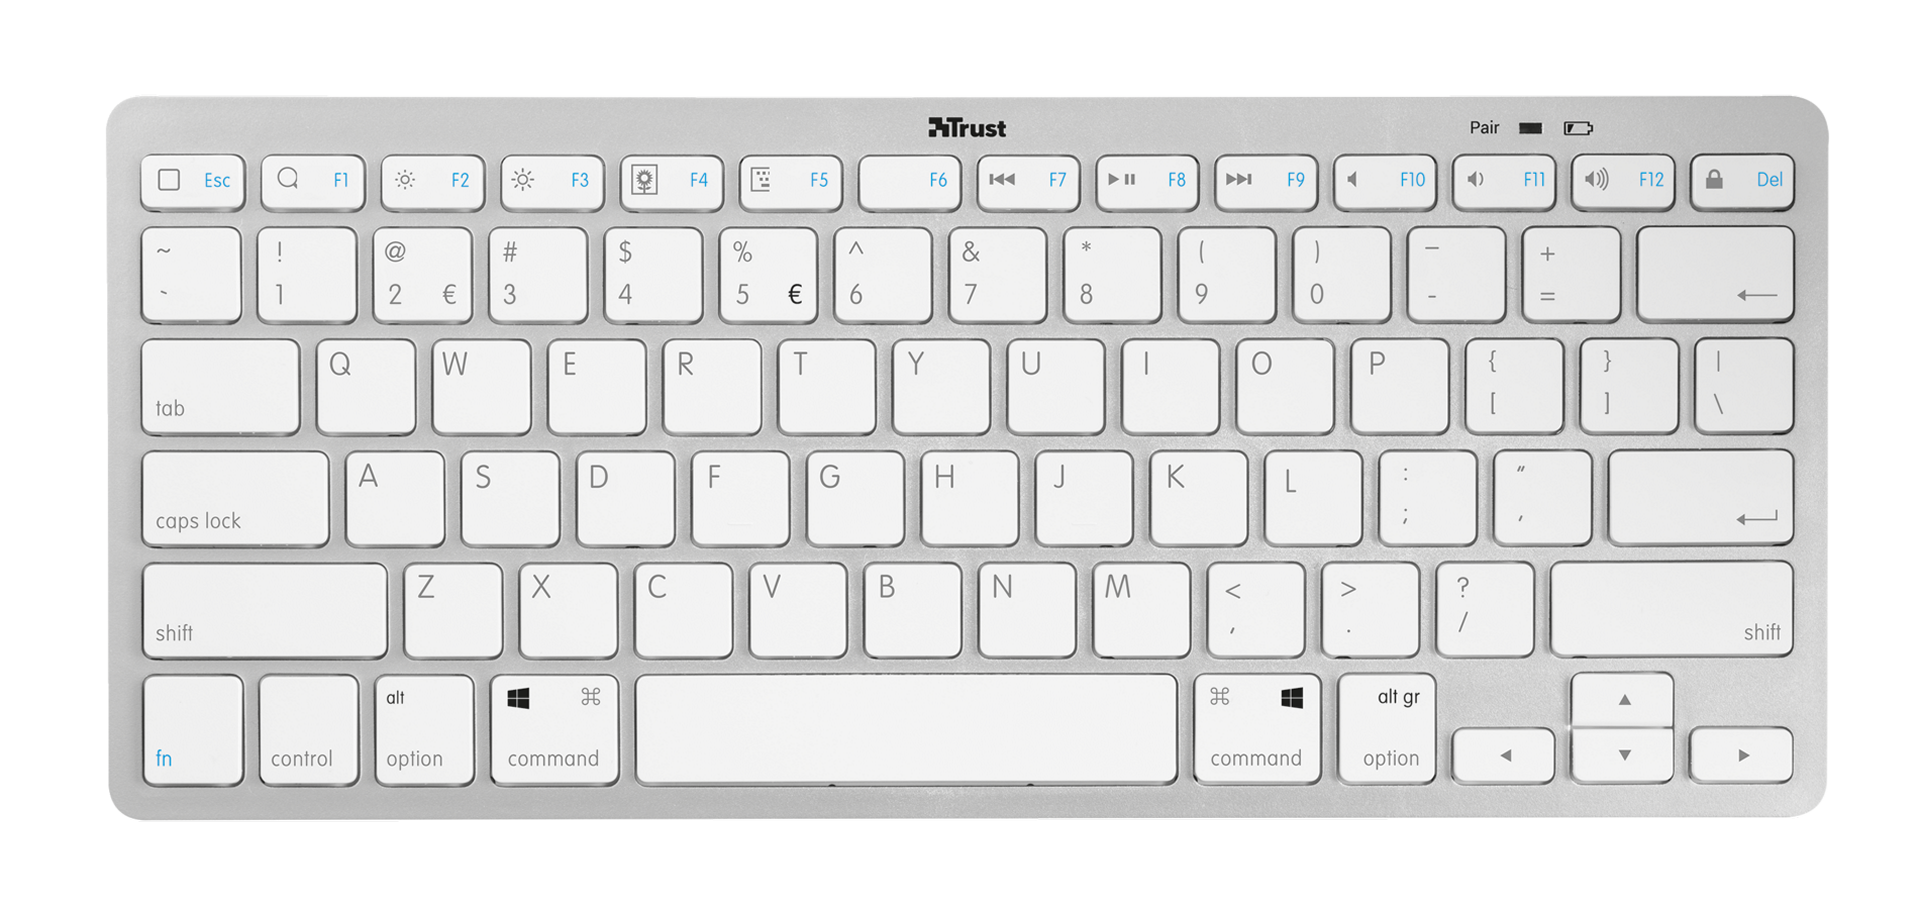 trust nado wireless bluetooth keyboard uk layout white computers accessories. Black Bedroom Furniture Sets. Home Design Ideas